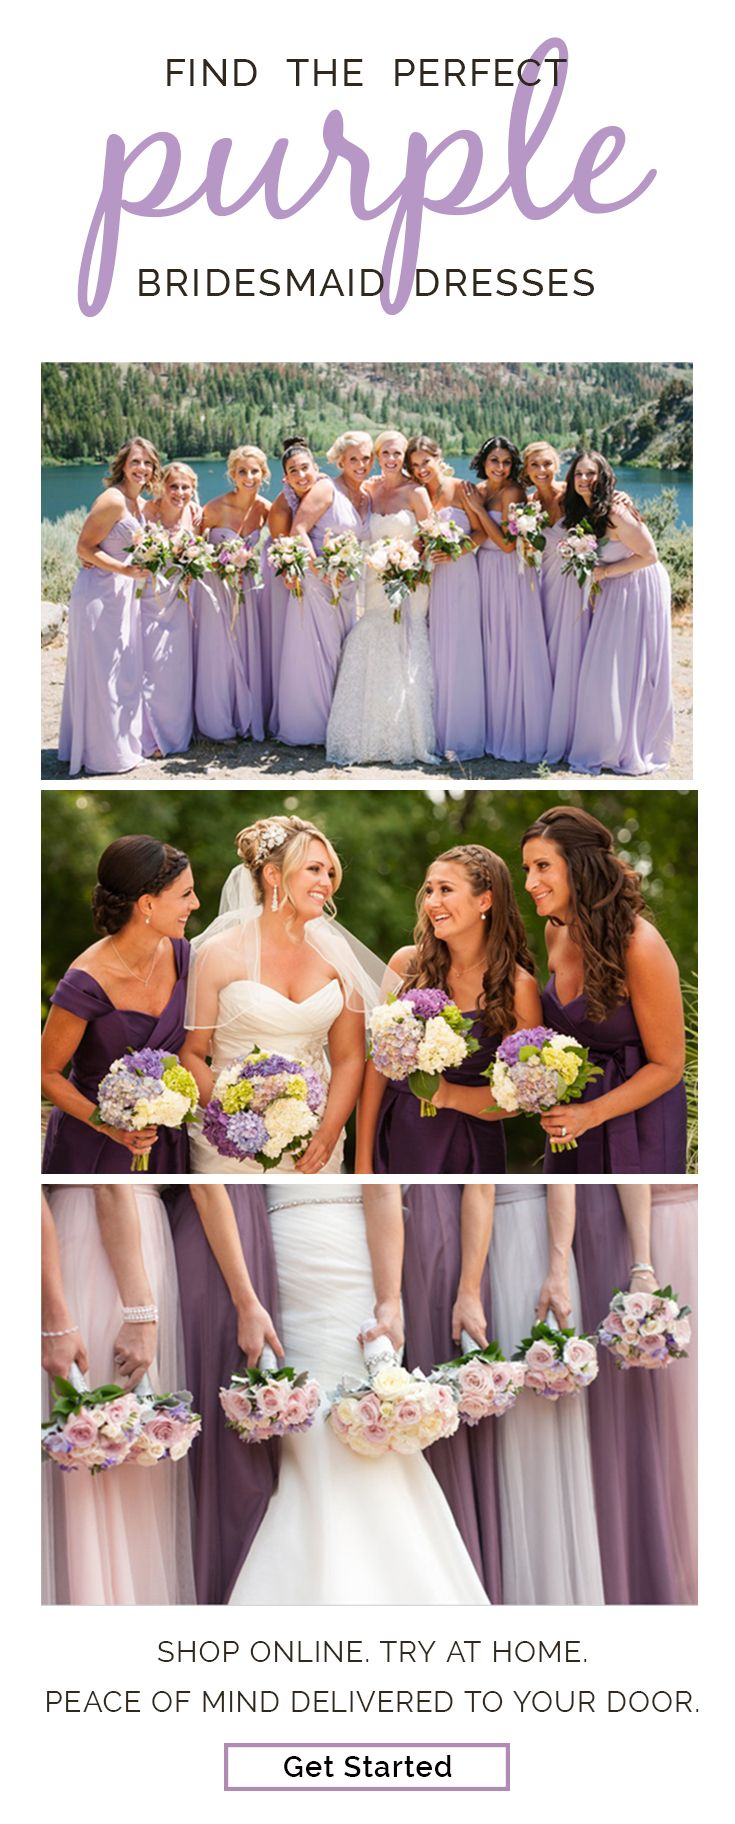 Brideside has over 400 bridesmaid dress styles in any shade you could dream of. Sign up and get matched with a free personal style consultant who can help you find the perfect style and color for the big day. Brideside makes choosing your bridesmaid dresses as easy as choosing your bridesmaids. Sign up and get shopping!